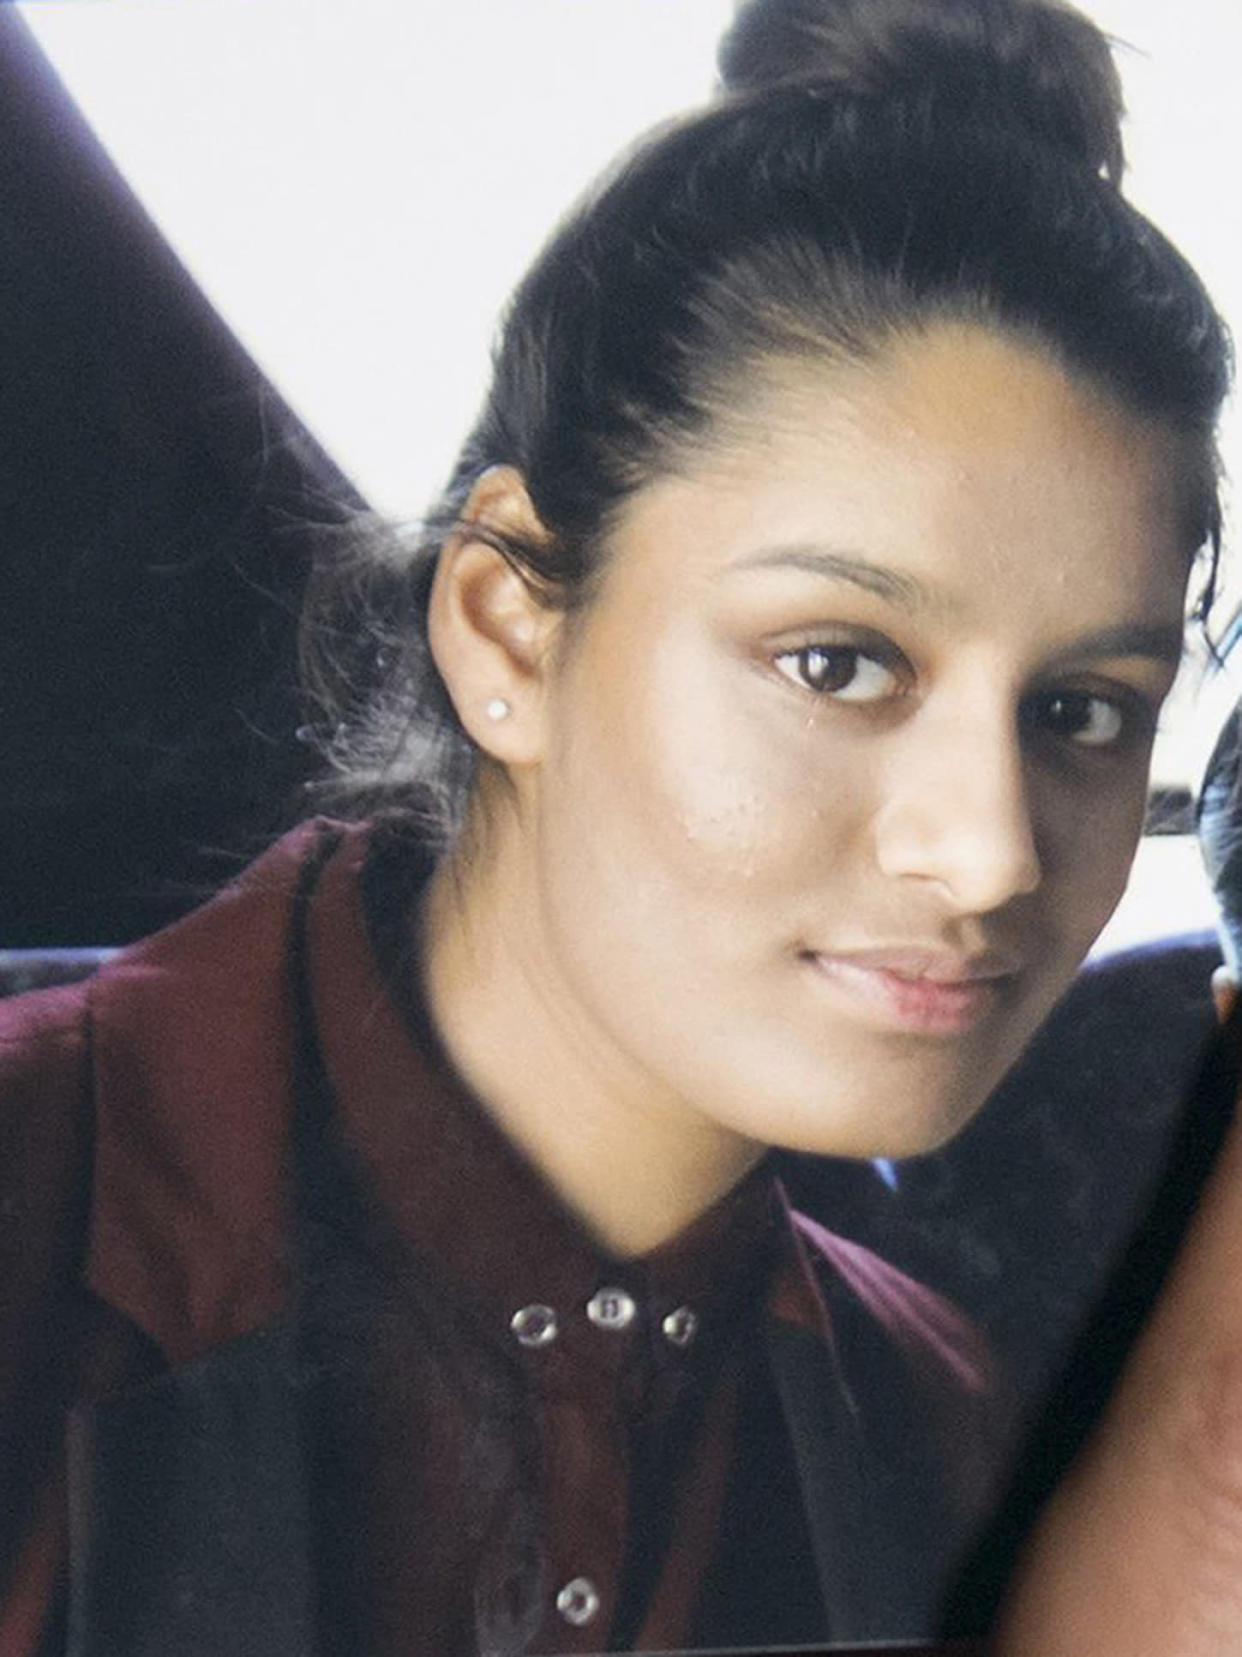 Undated file photo of Islamic State bride Shamima Begum who said she regrets speaking to the media and wishes she had found a different way to contact her family.